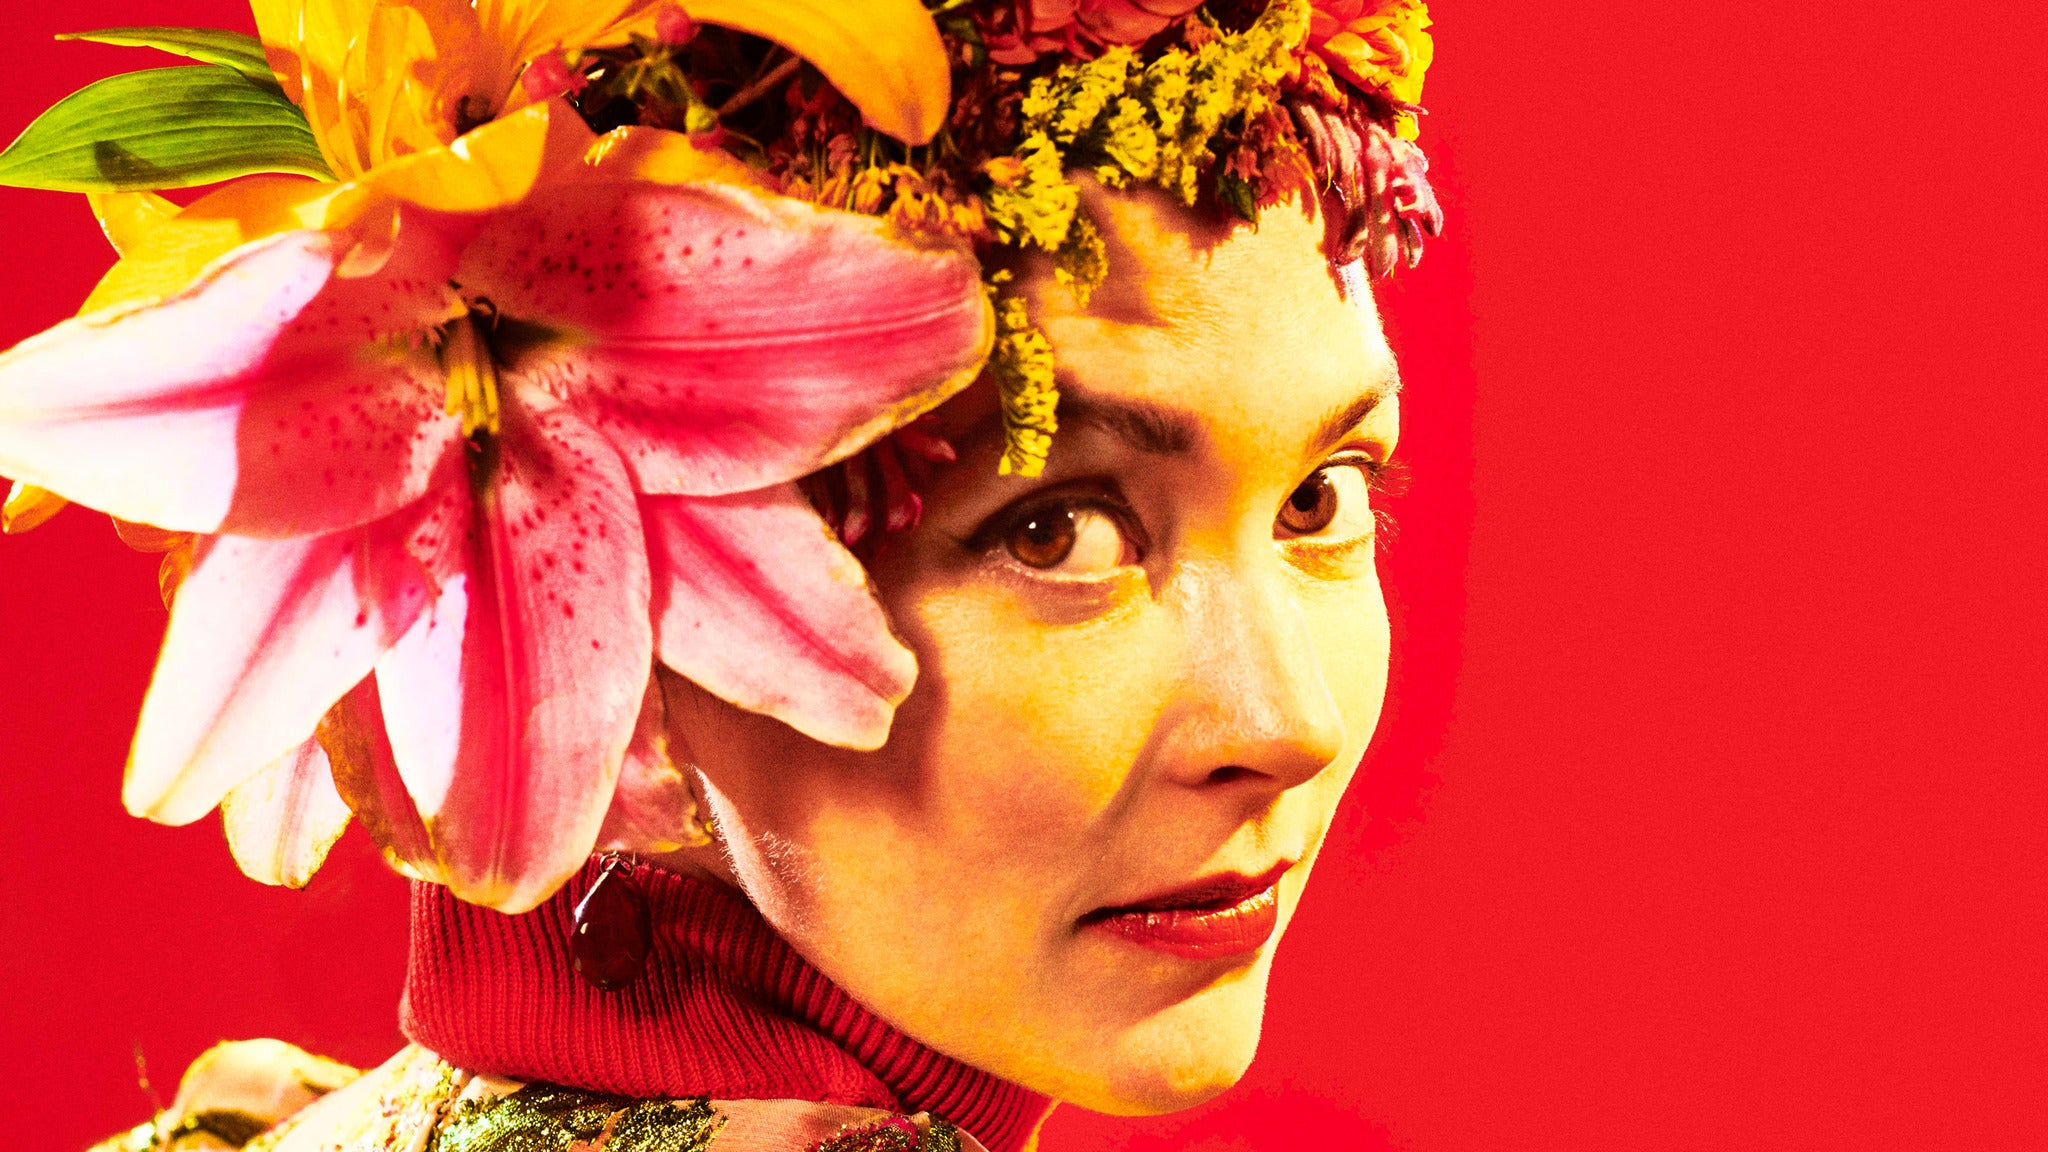 Amanda Shires at Variety Playhouse